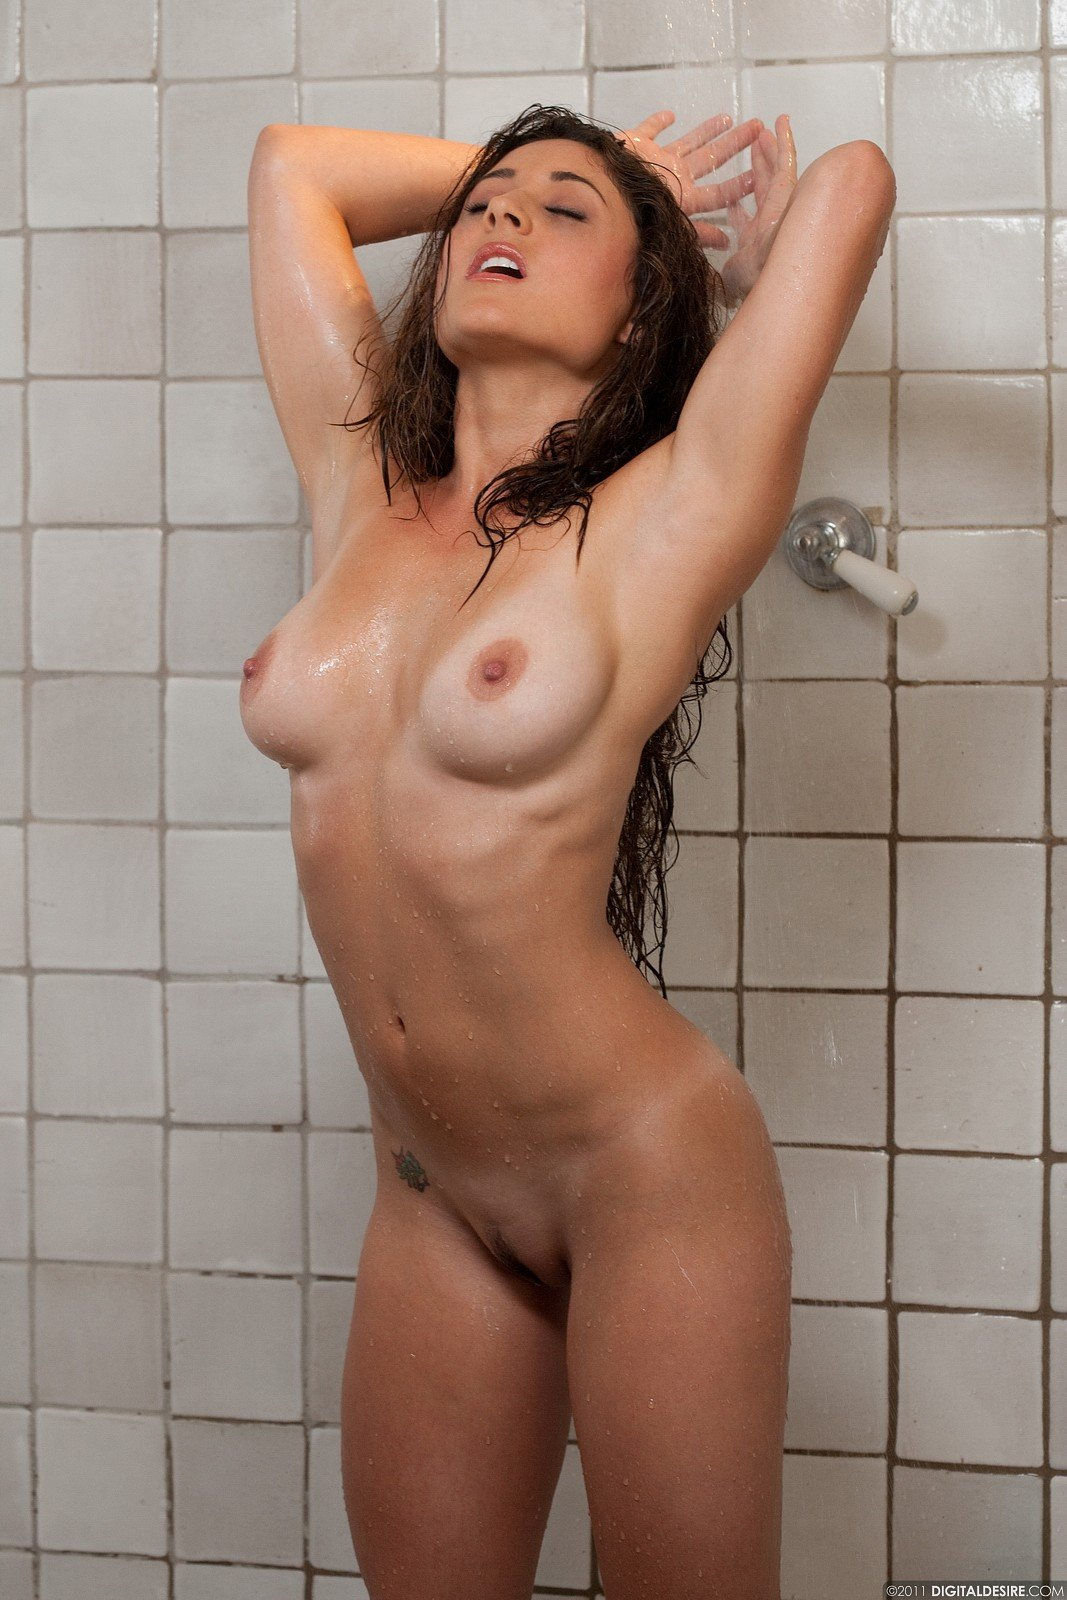 Nudes In Shower